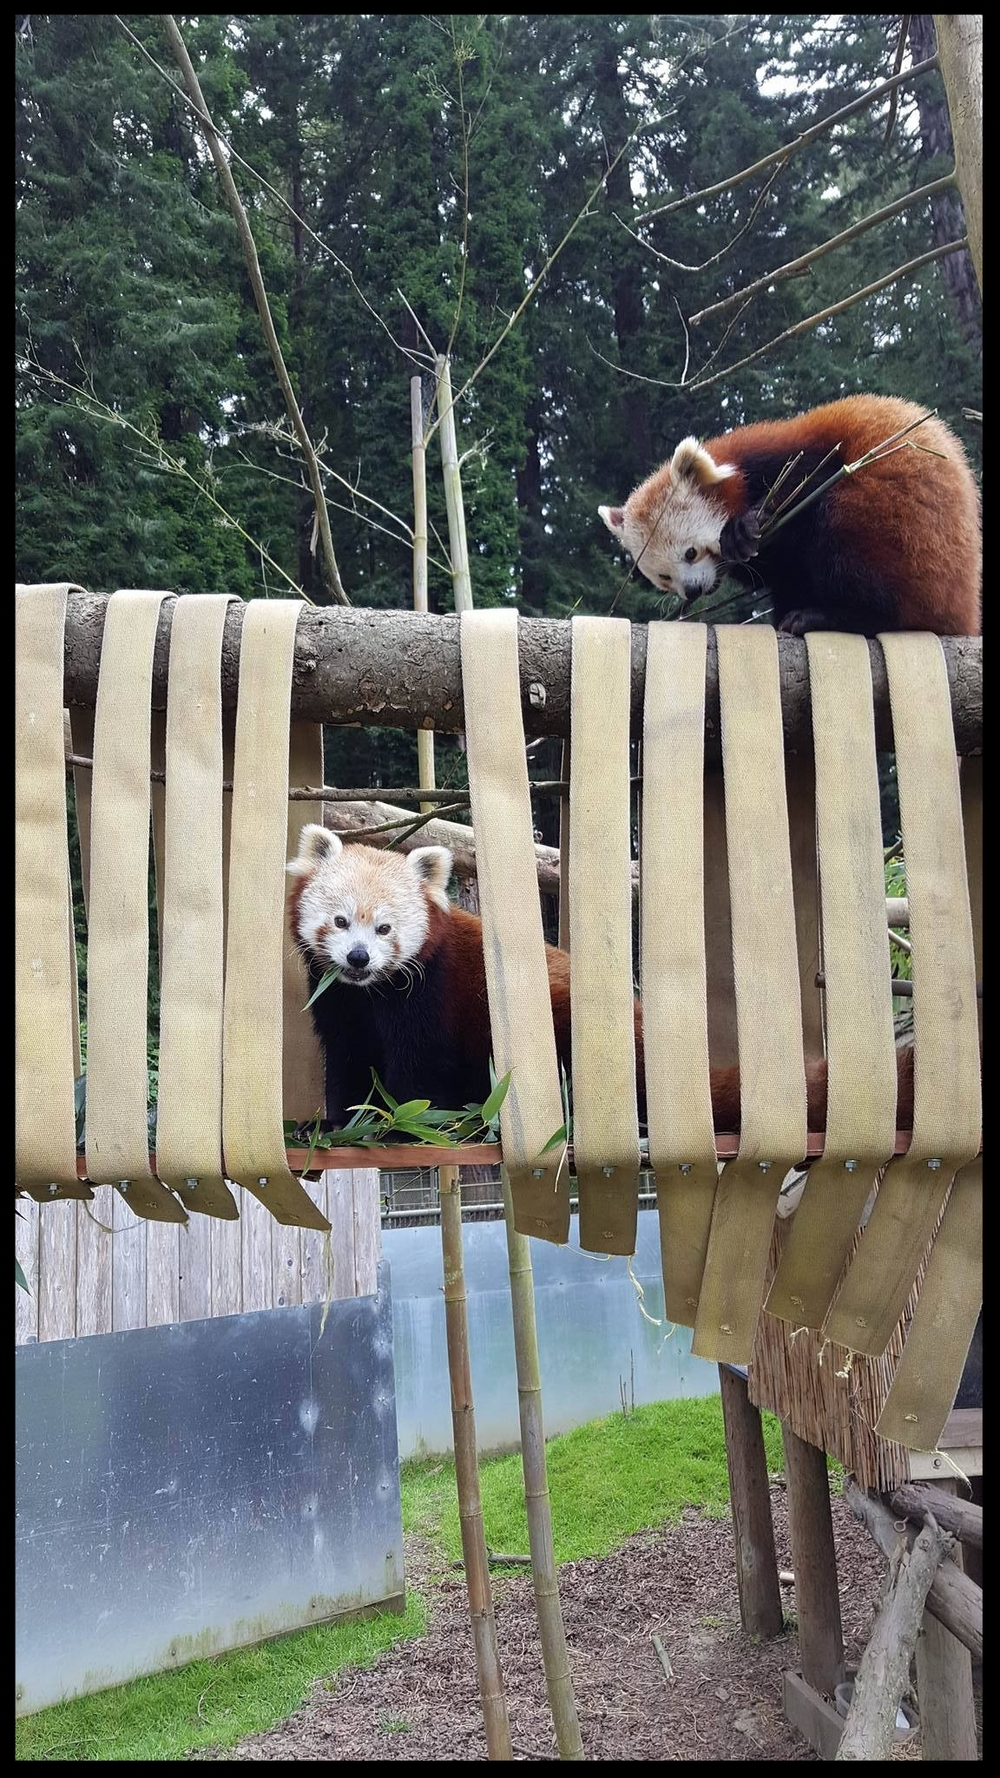 Red Pandas at the Sequoia Park Zoo nibble on browse placed throughout their fire hose climbing structure.  (Photo Credit: L. Miller)